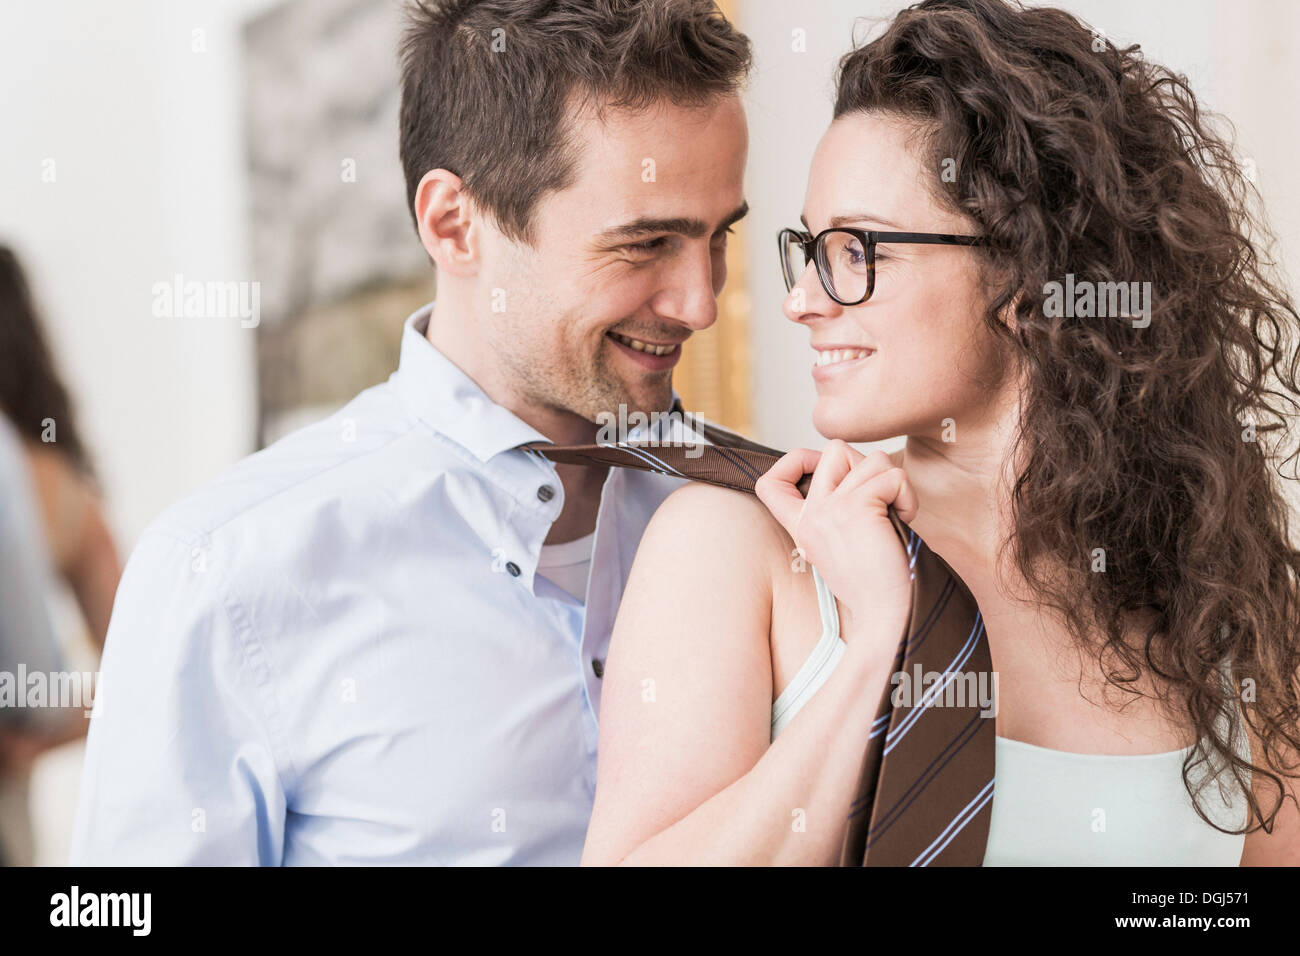 Mid adult woman pulling man's tie Photo Stock